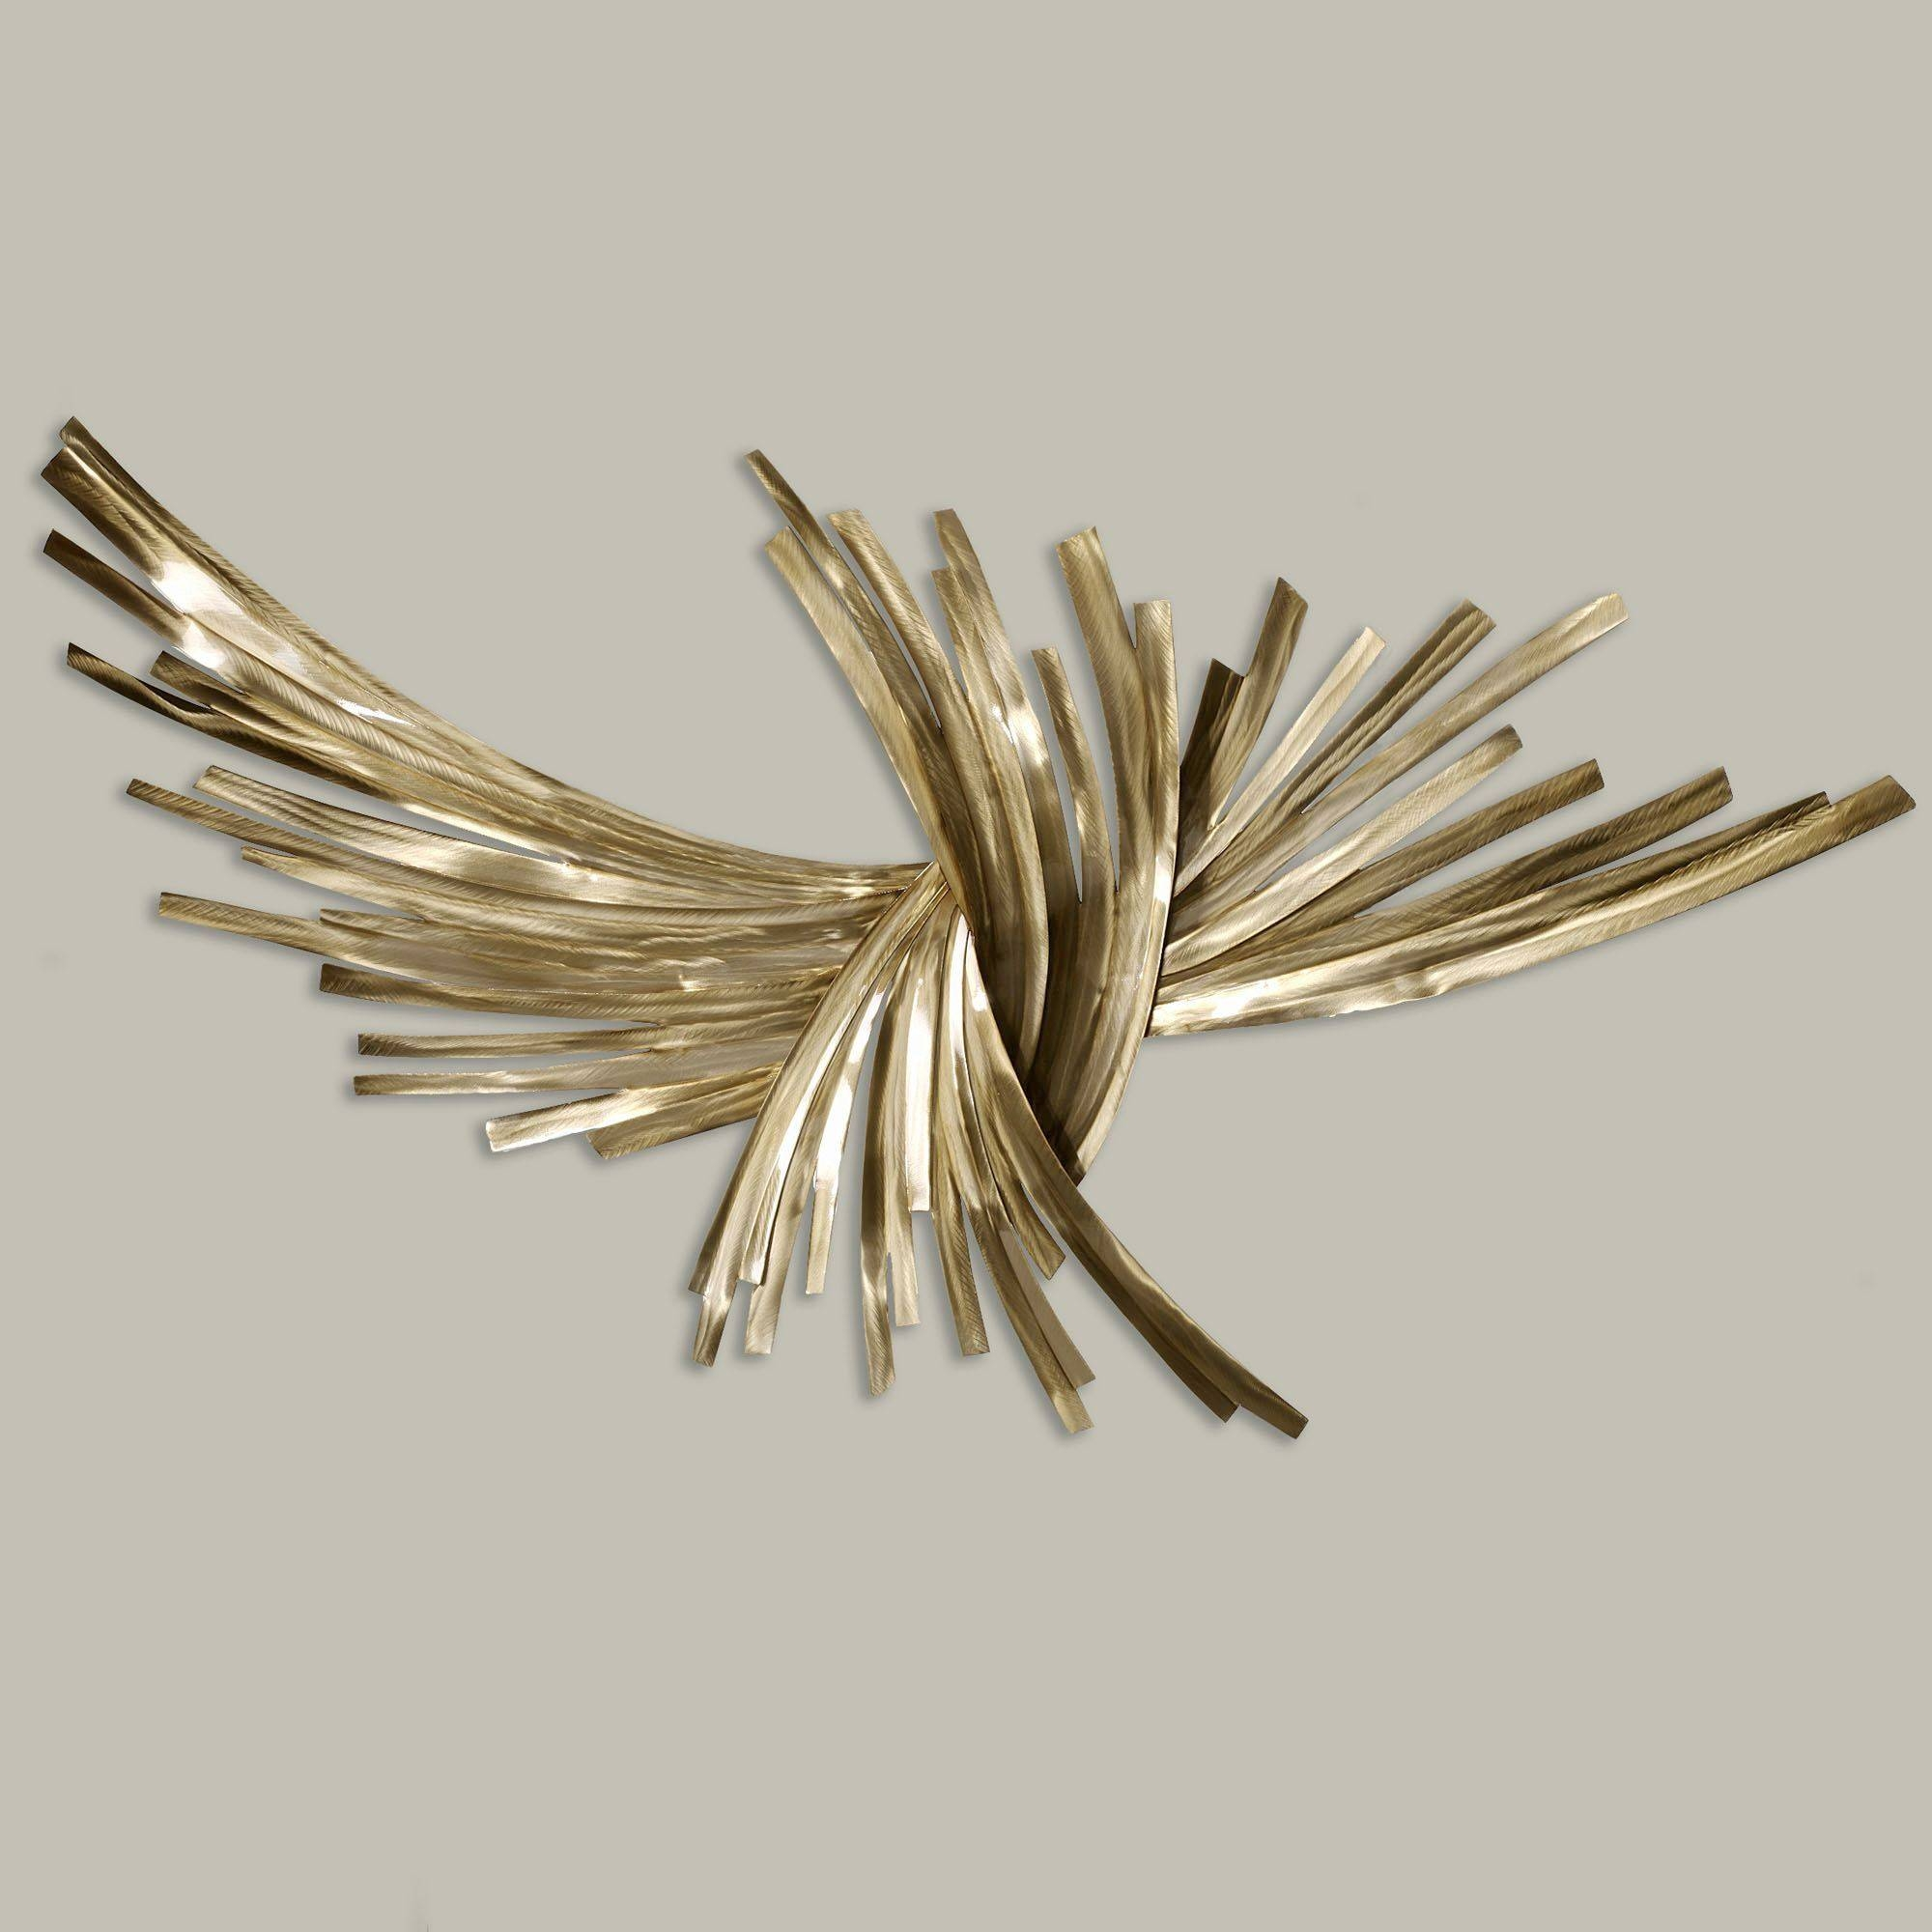 Contemporary Metal Wall Art Sculptures | Touch Of Class For Newest Contemporary Metal Wall Art (Gallery 9 of 20)